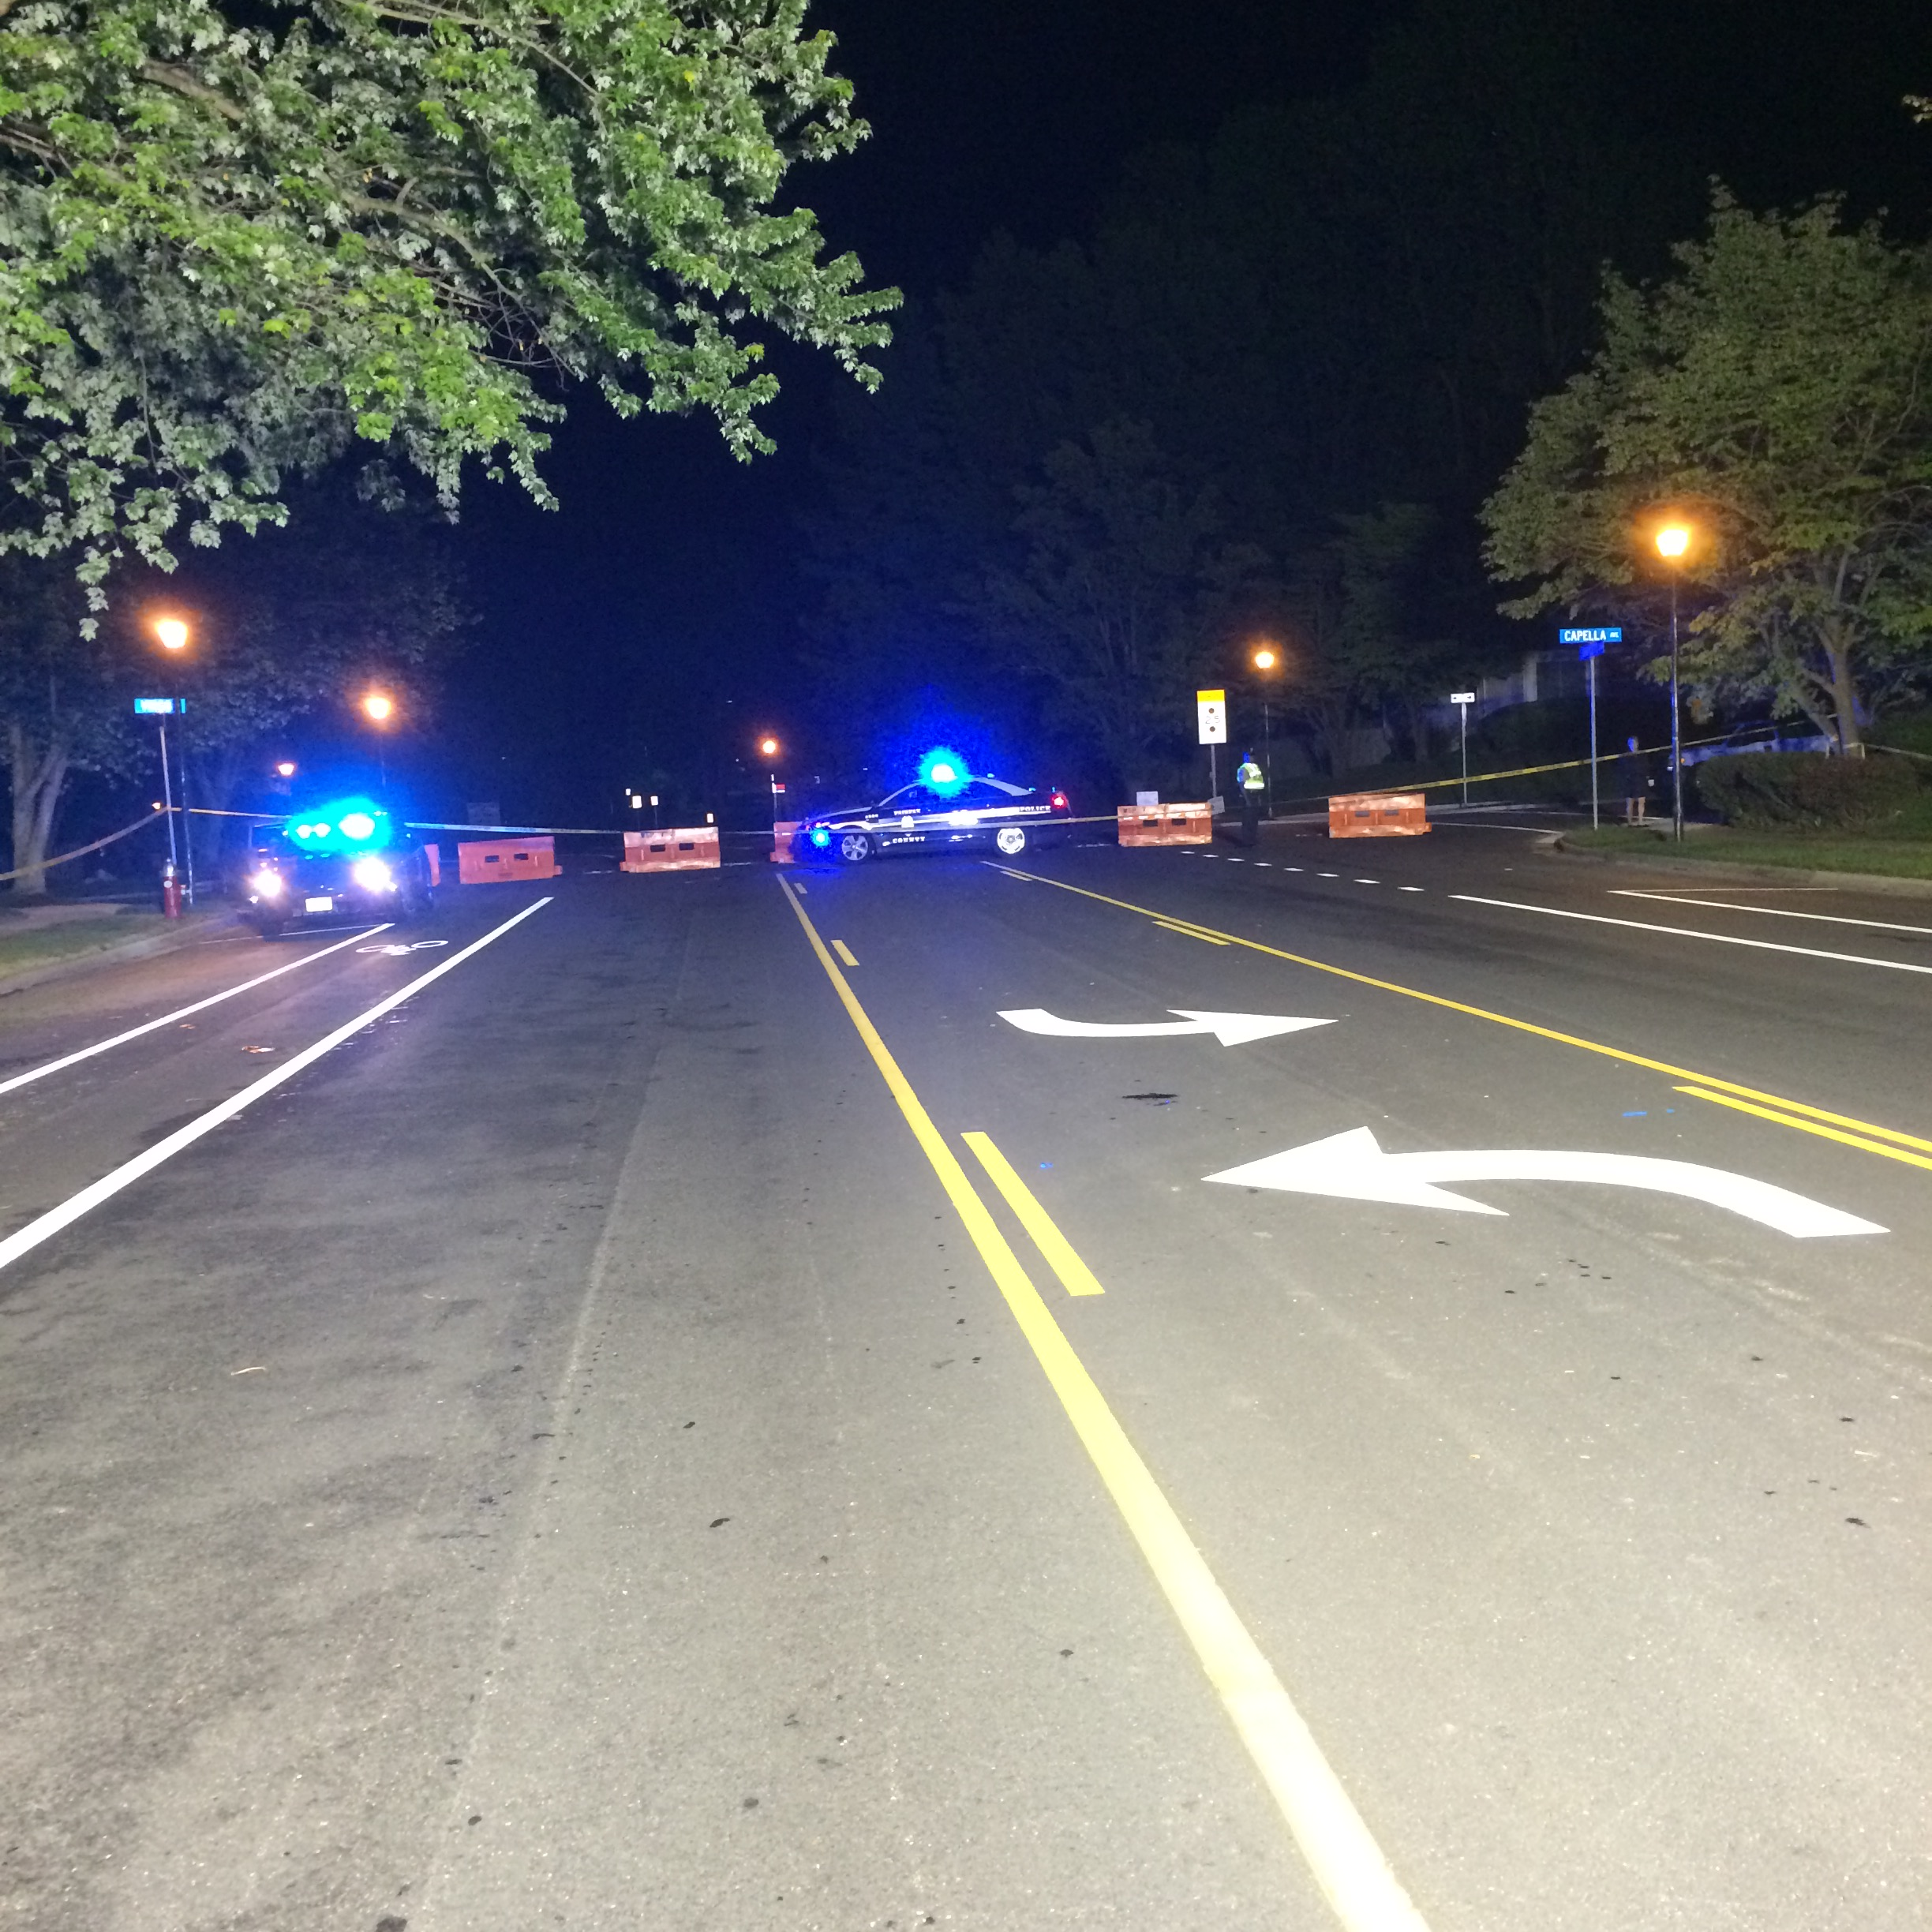 Police: Pedestrian killed in hit-and-run in Fairfax Co.